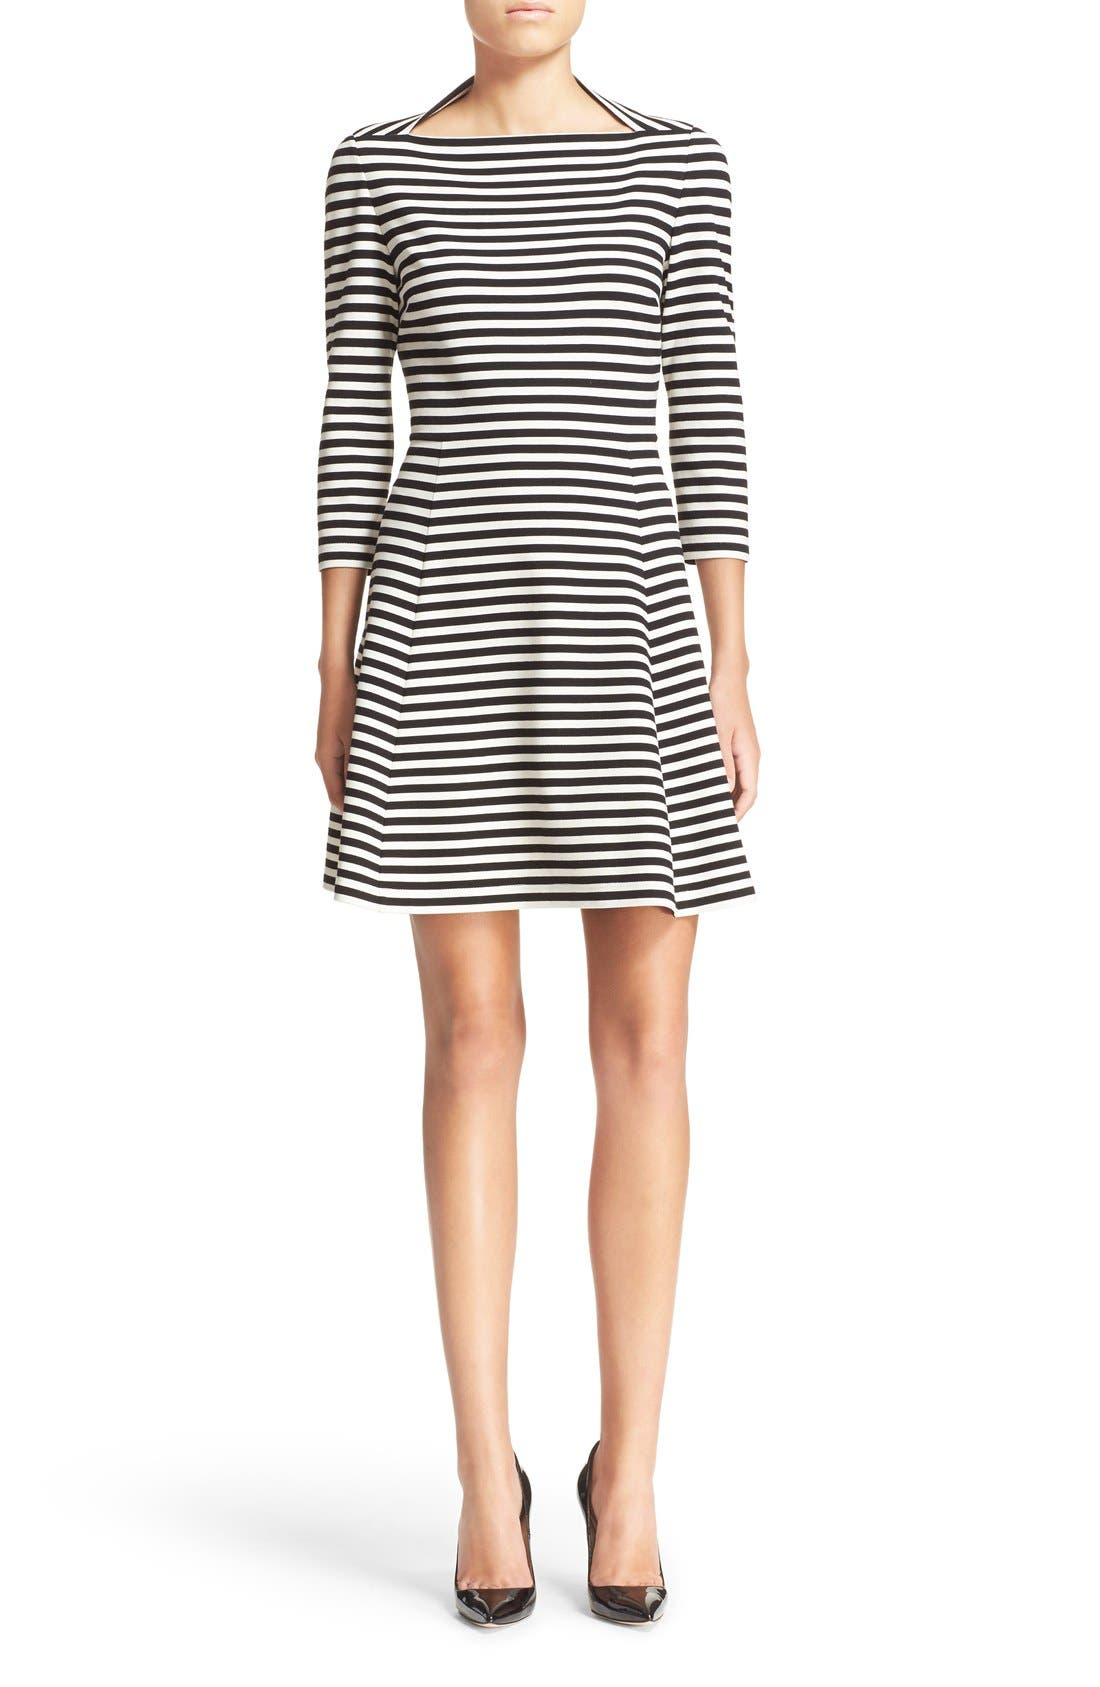 KATE SPADE NEW YORK stripe fit & flare